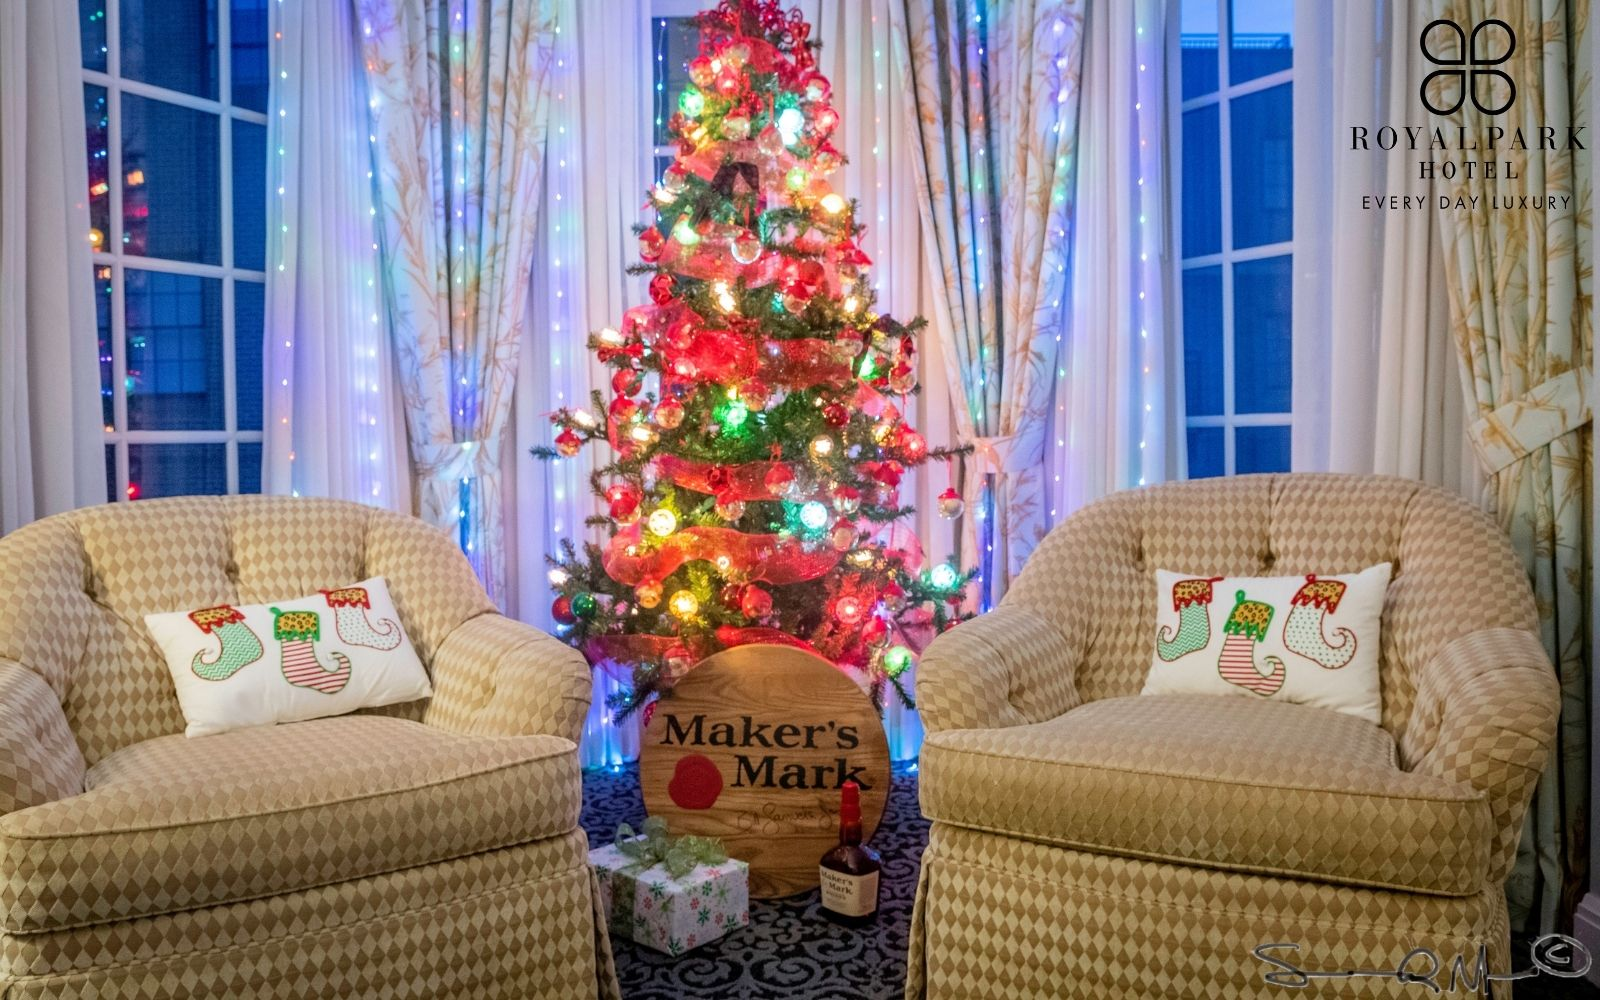 Holiday Themed Suites at Royal Park Hotel